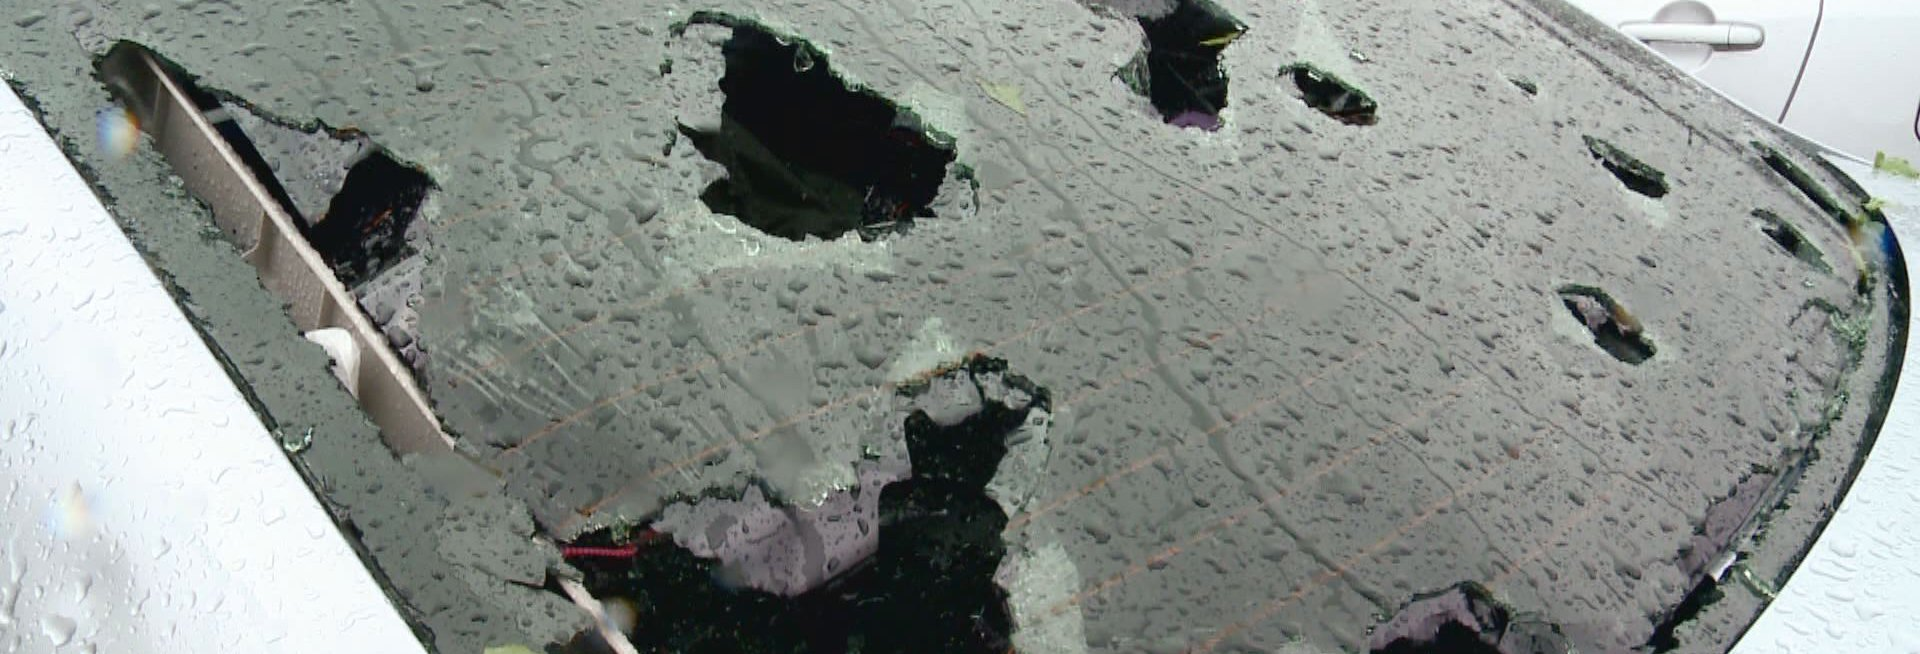 May Showers Brought Hail Damage to Lakewood Vehicles